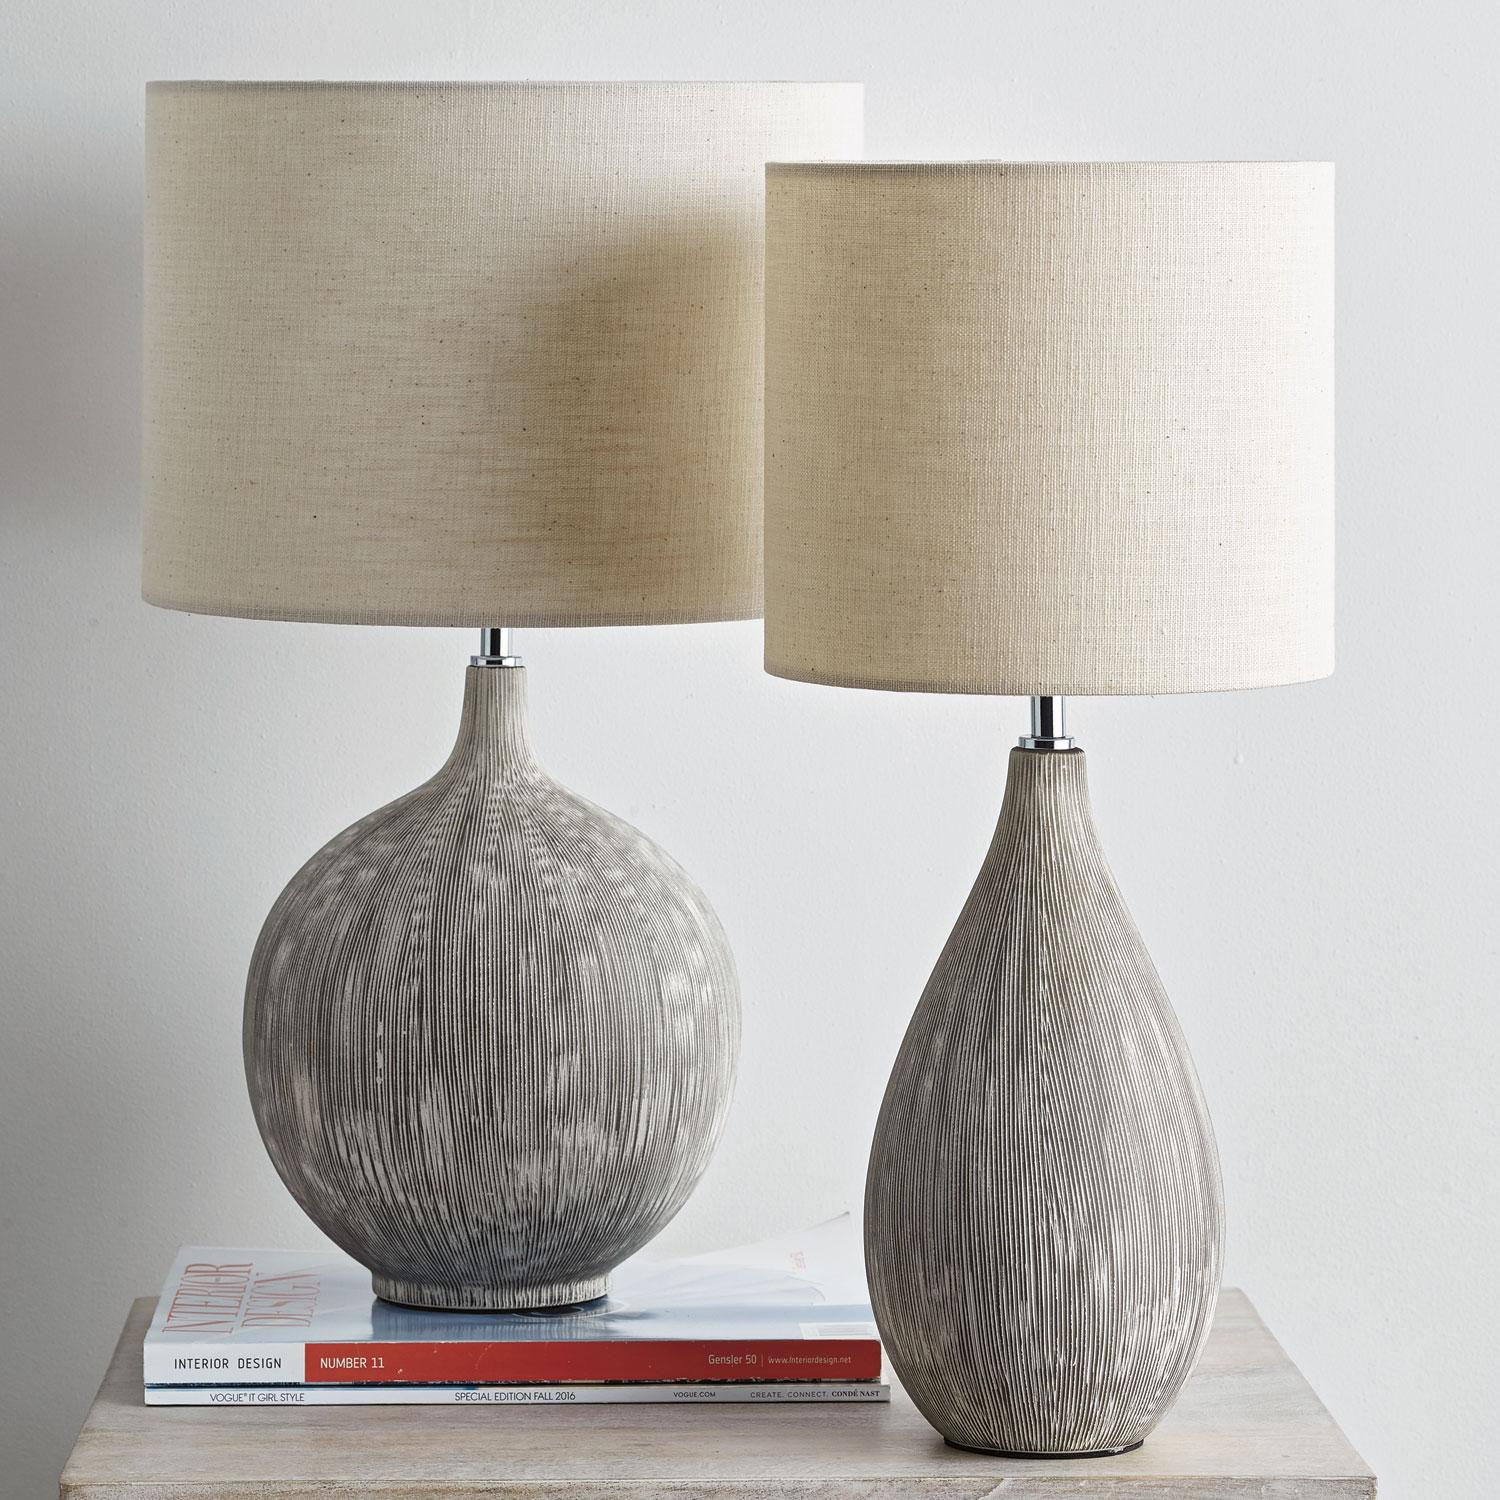 Pacific Grove Table Lamp Oblong Earth U.S. Supply